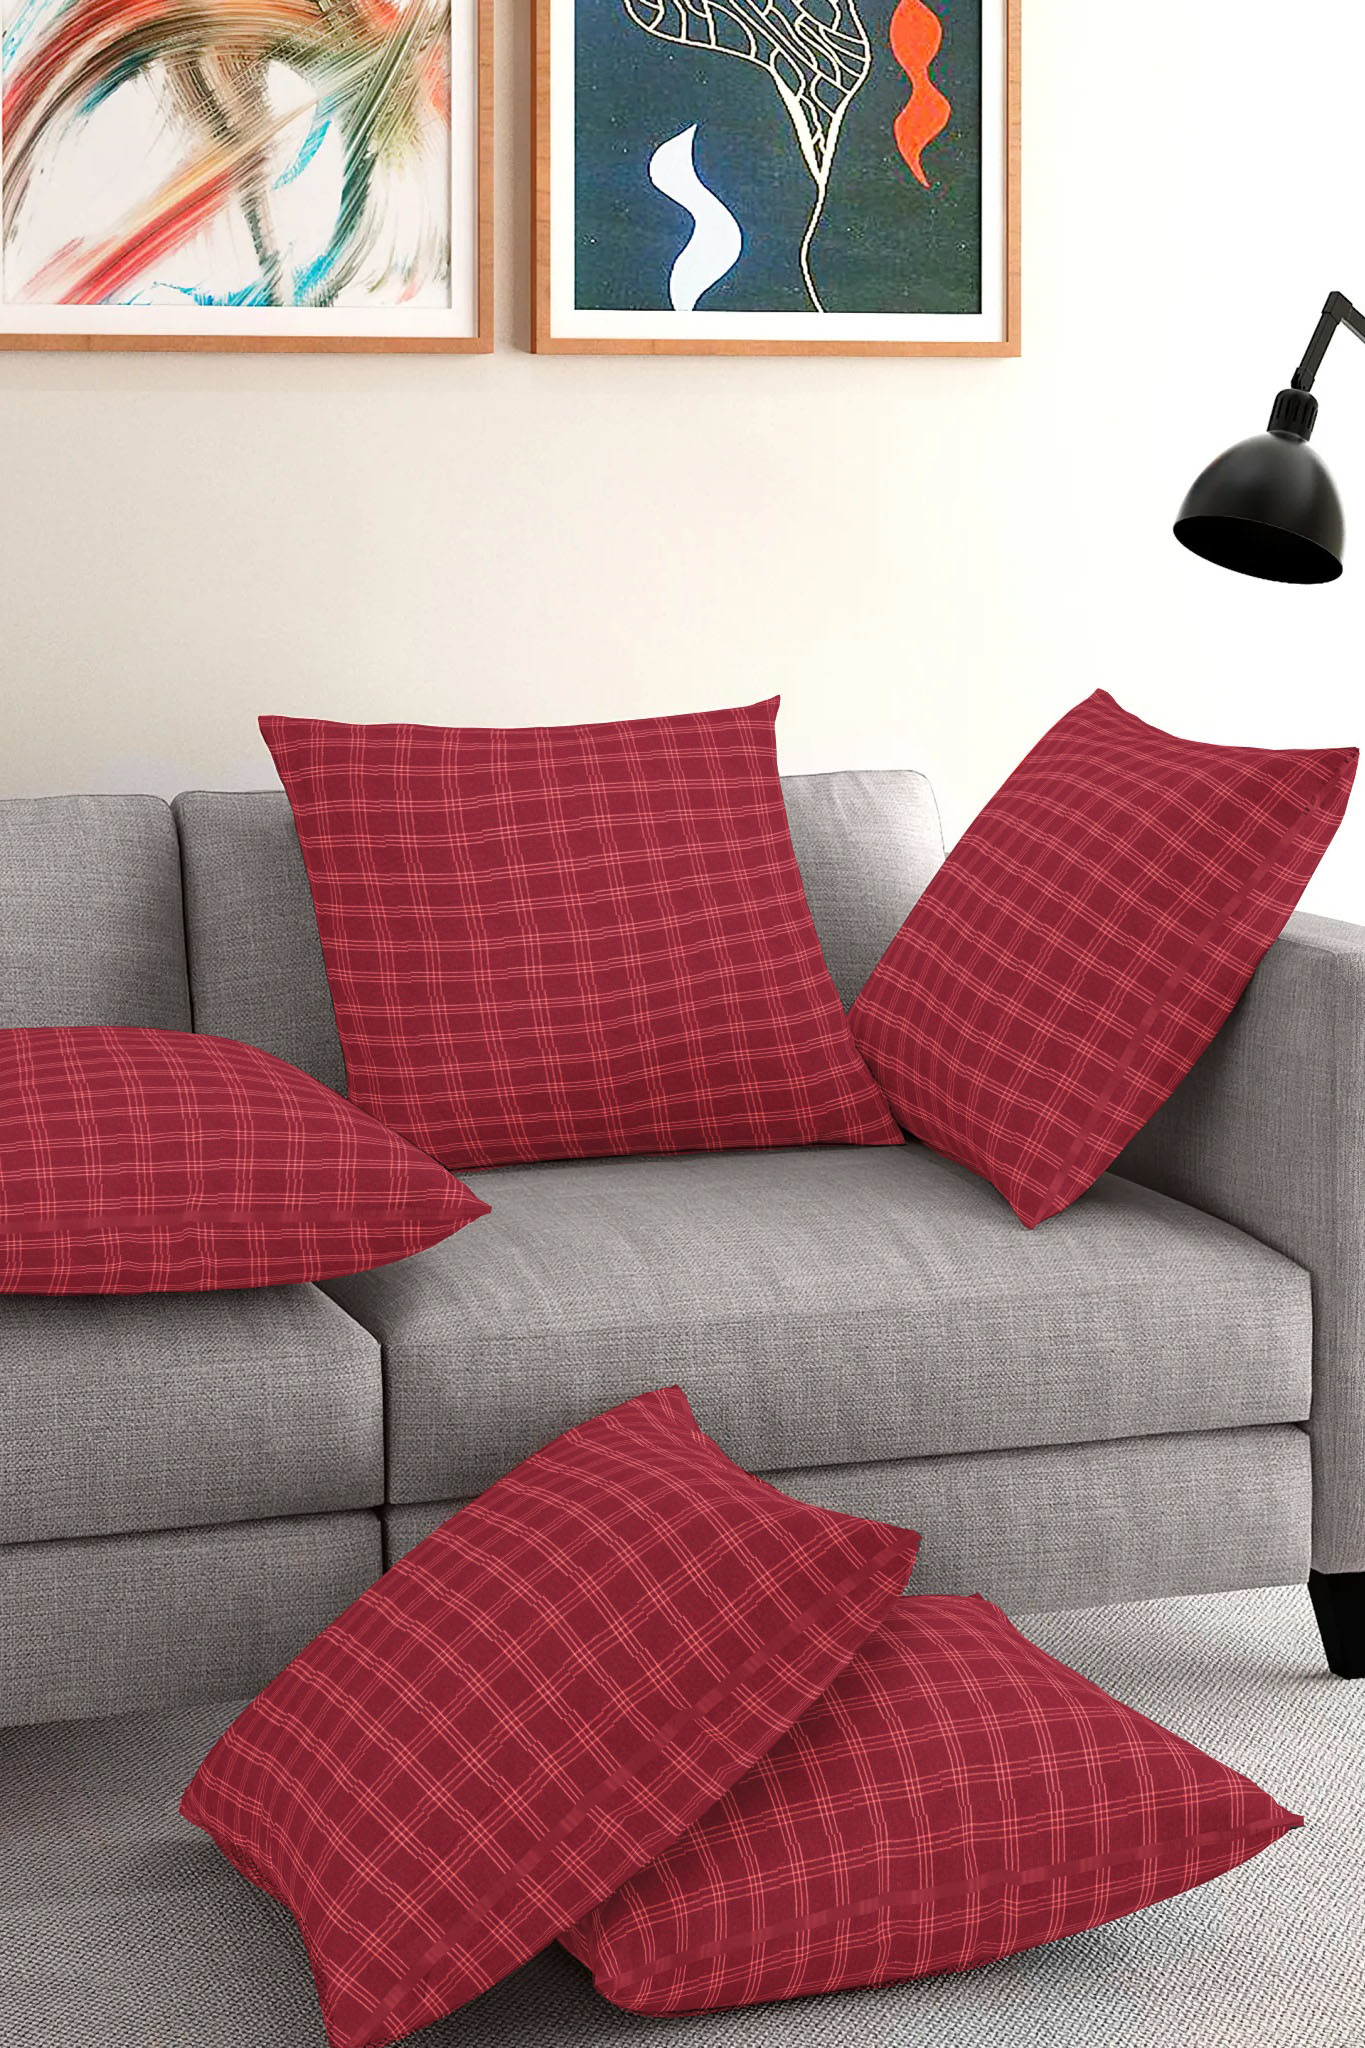 Set of 5-Maroon White Cotton Cushion Cover-35381-16x16 Inches